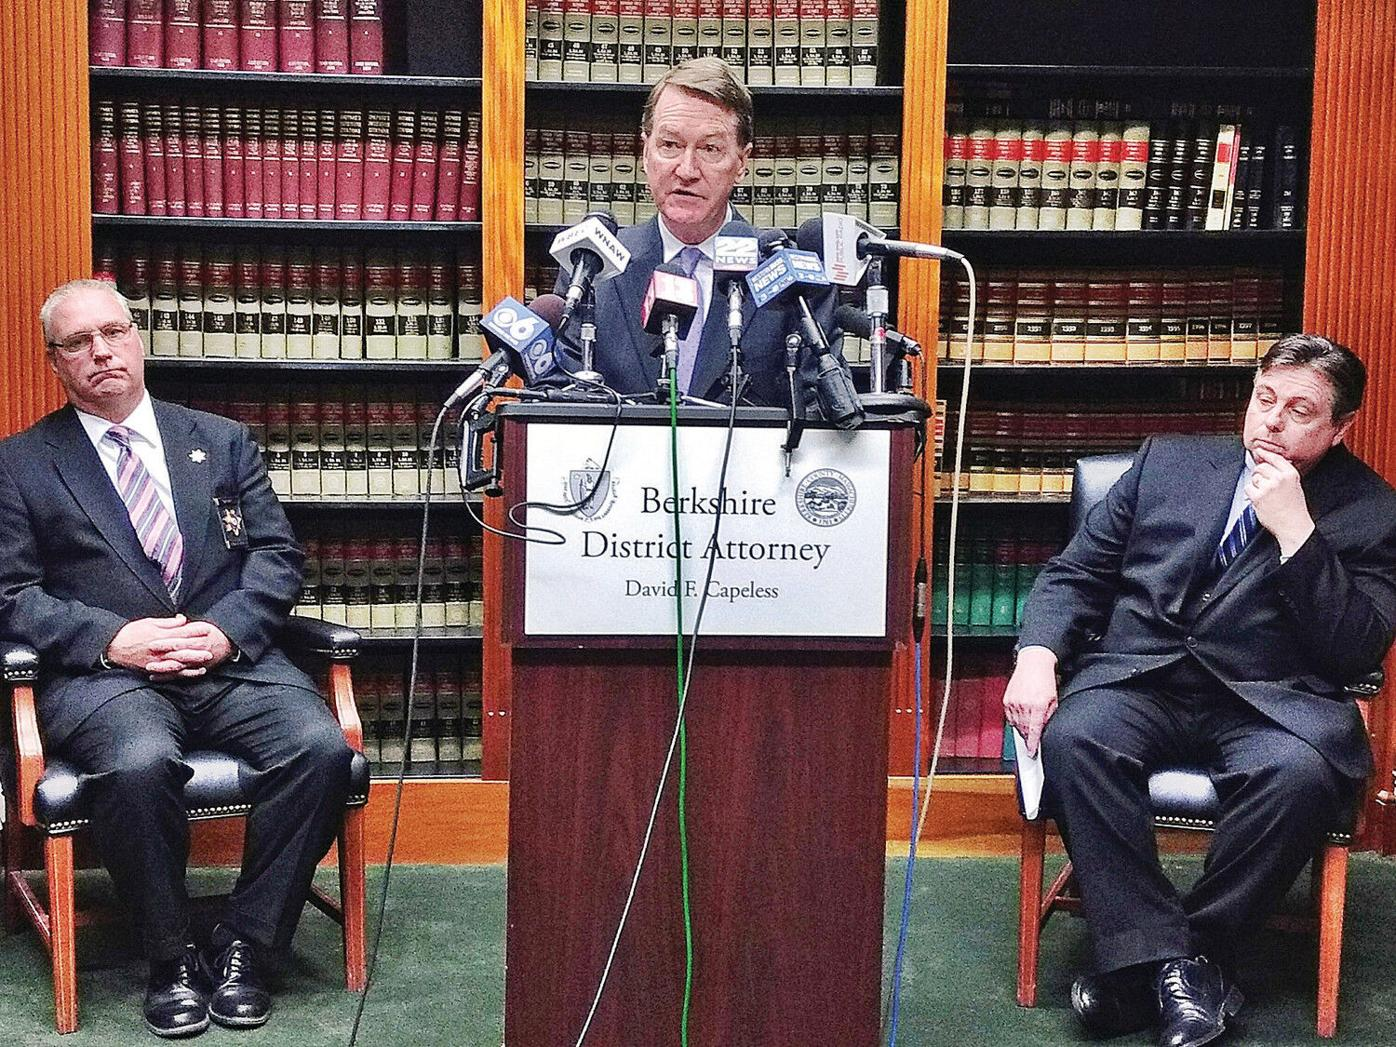 Berkshire District Attorney David Capeless stepping down